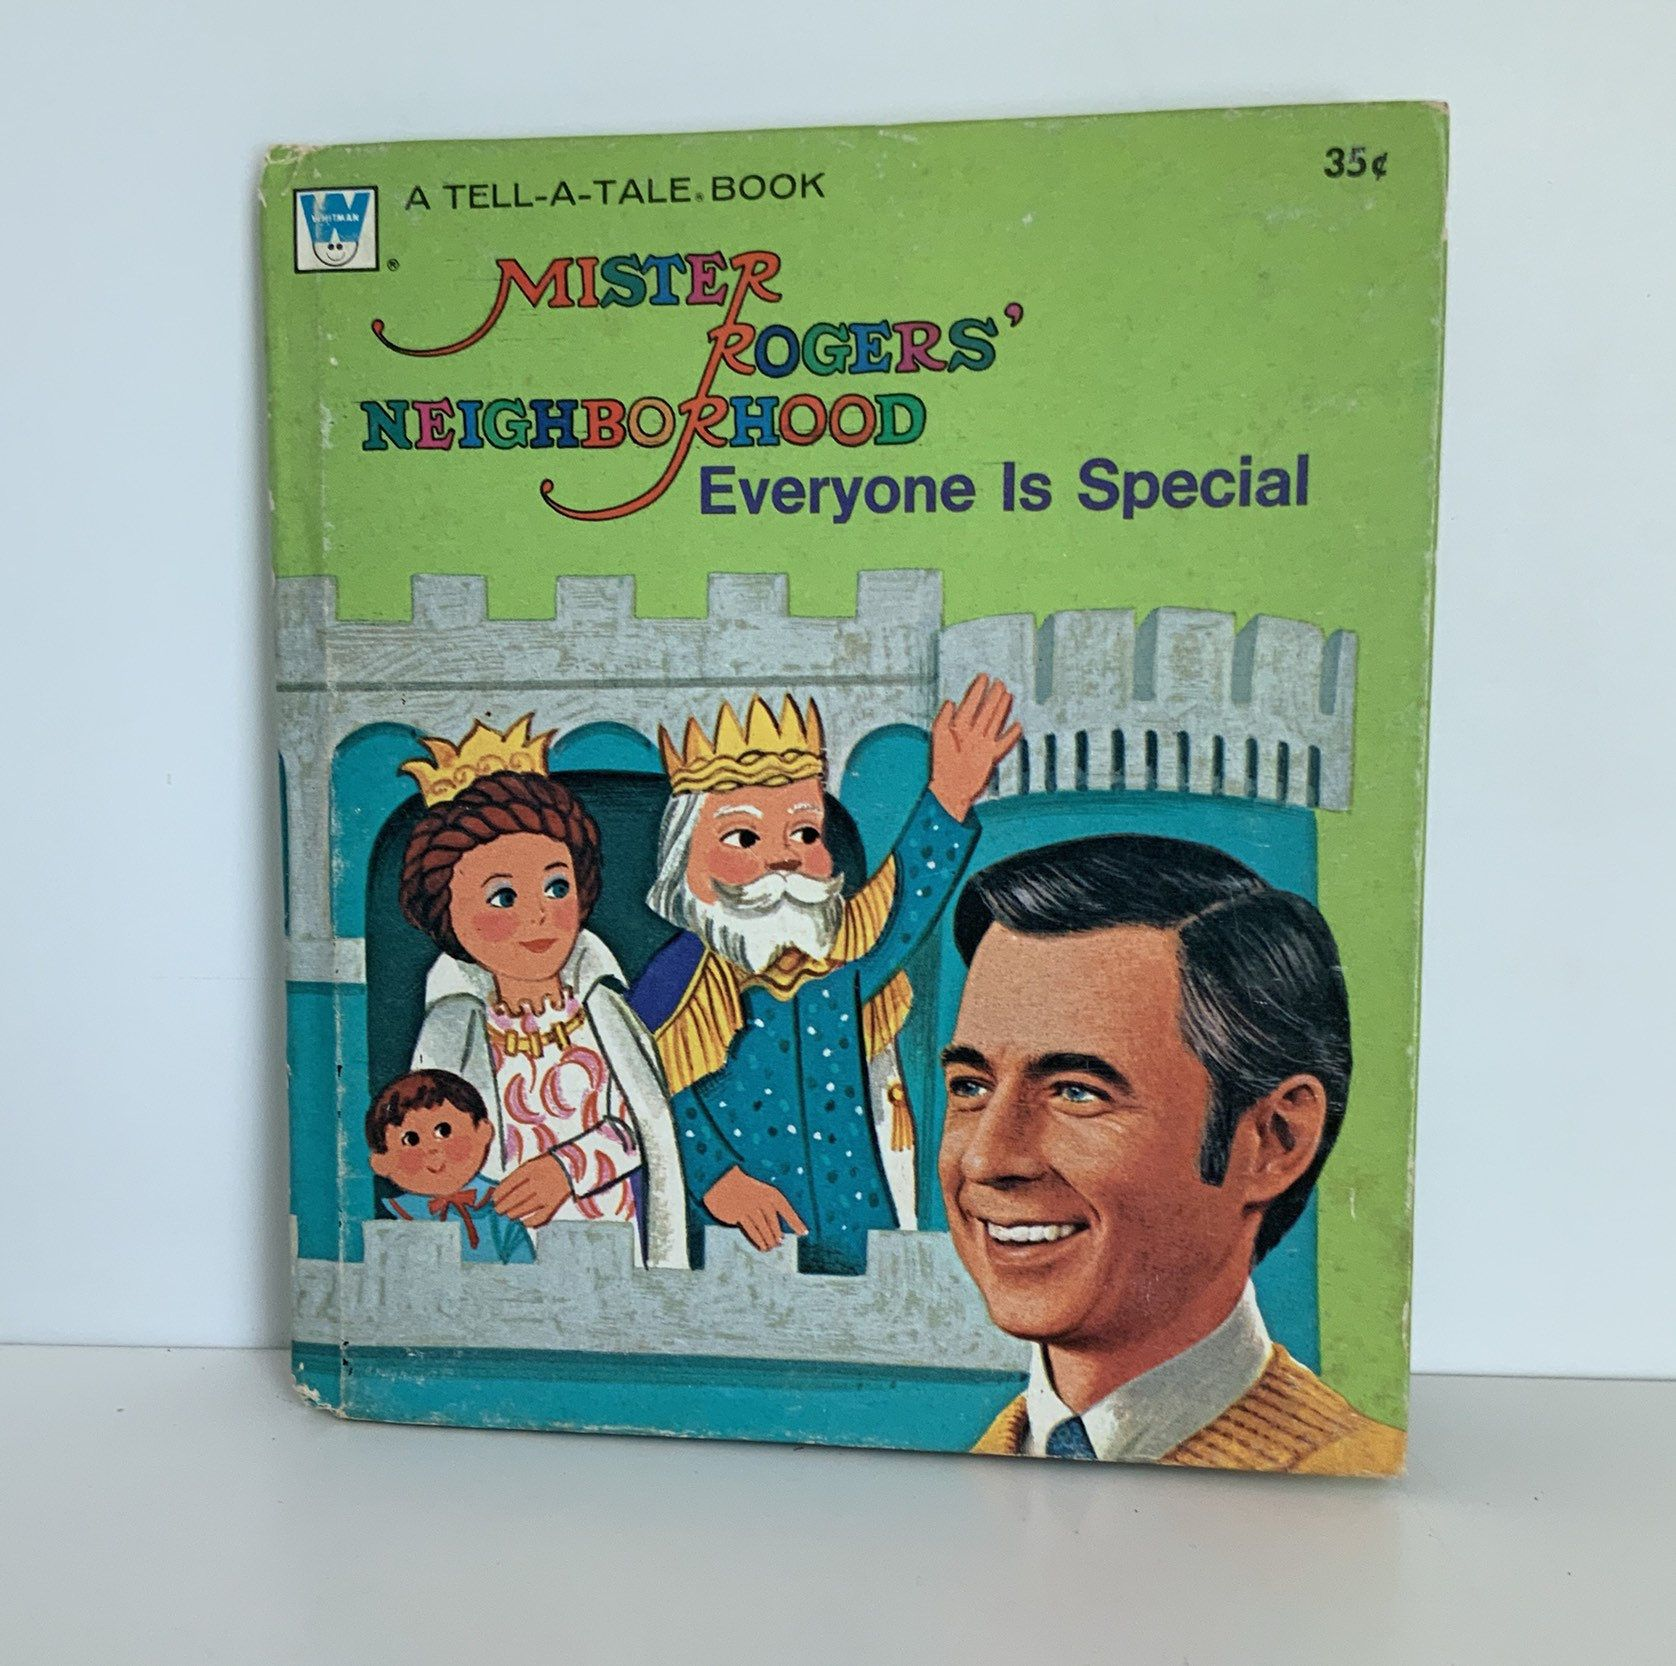 1975 Mister Rogers Neighborhood Book Whitman Tell A Tale Recycled Book Child S Book Etsy Booksand Mister Rogers Neighborhood Mr Rogers Little Golden Books